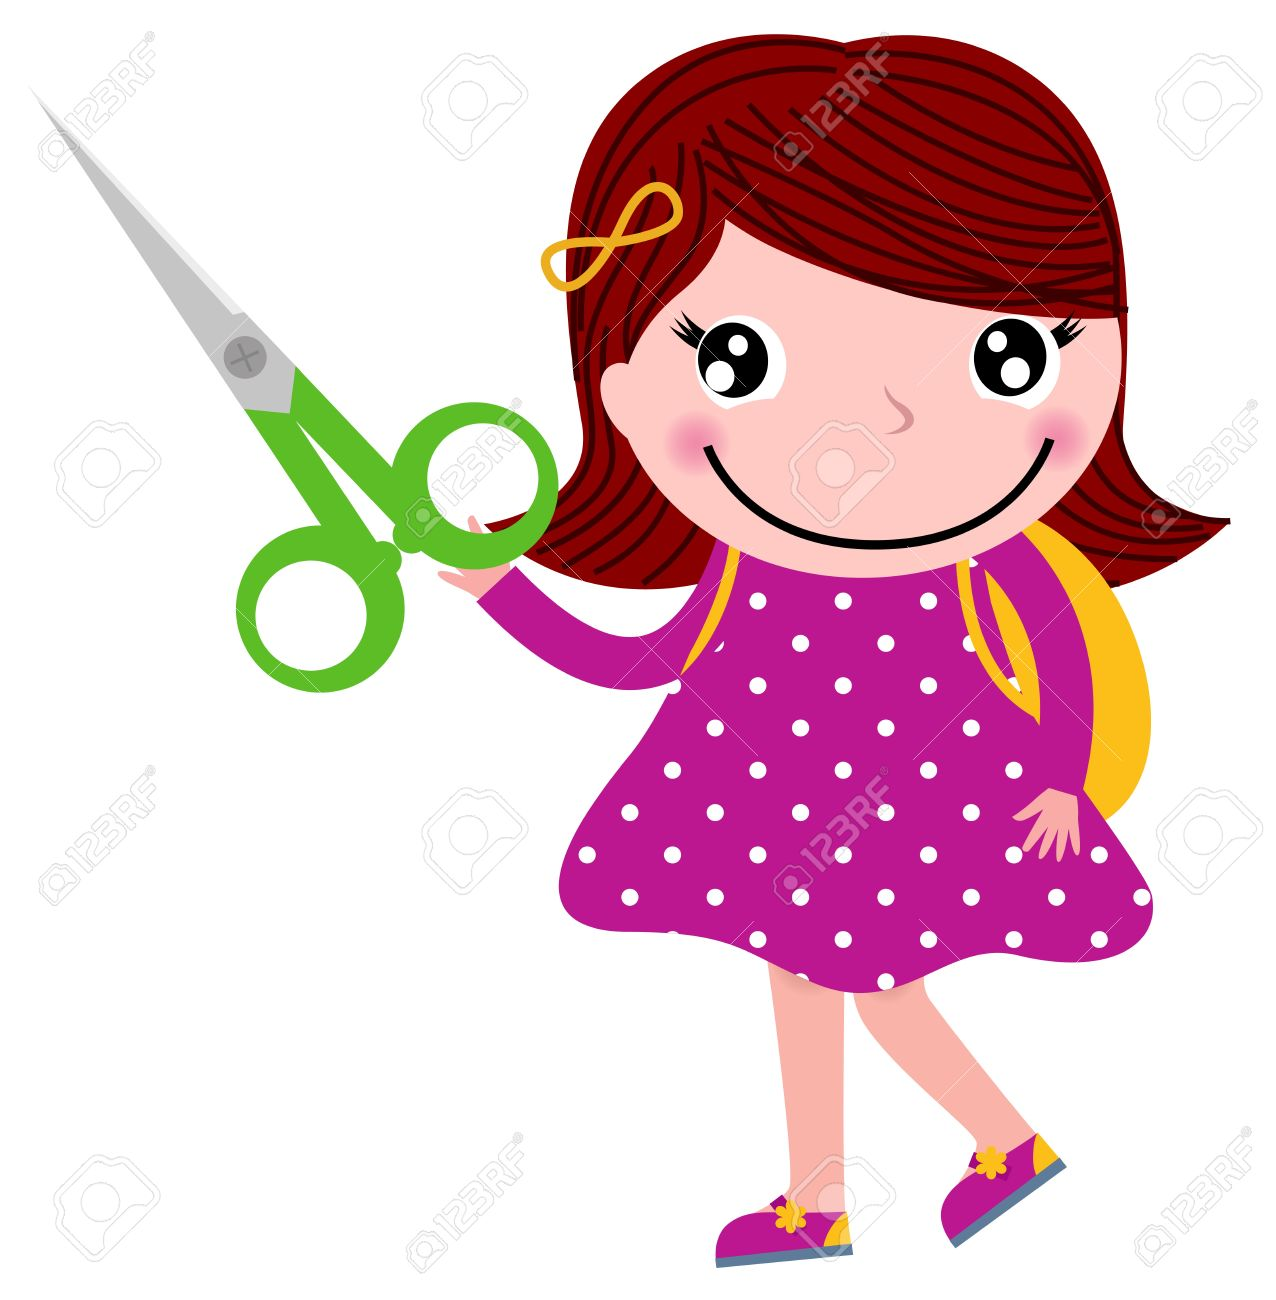 Cute Happy Child With Shears Cartoon Illustration